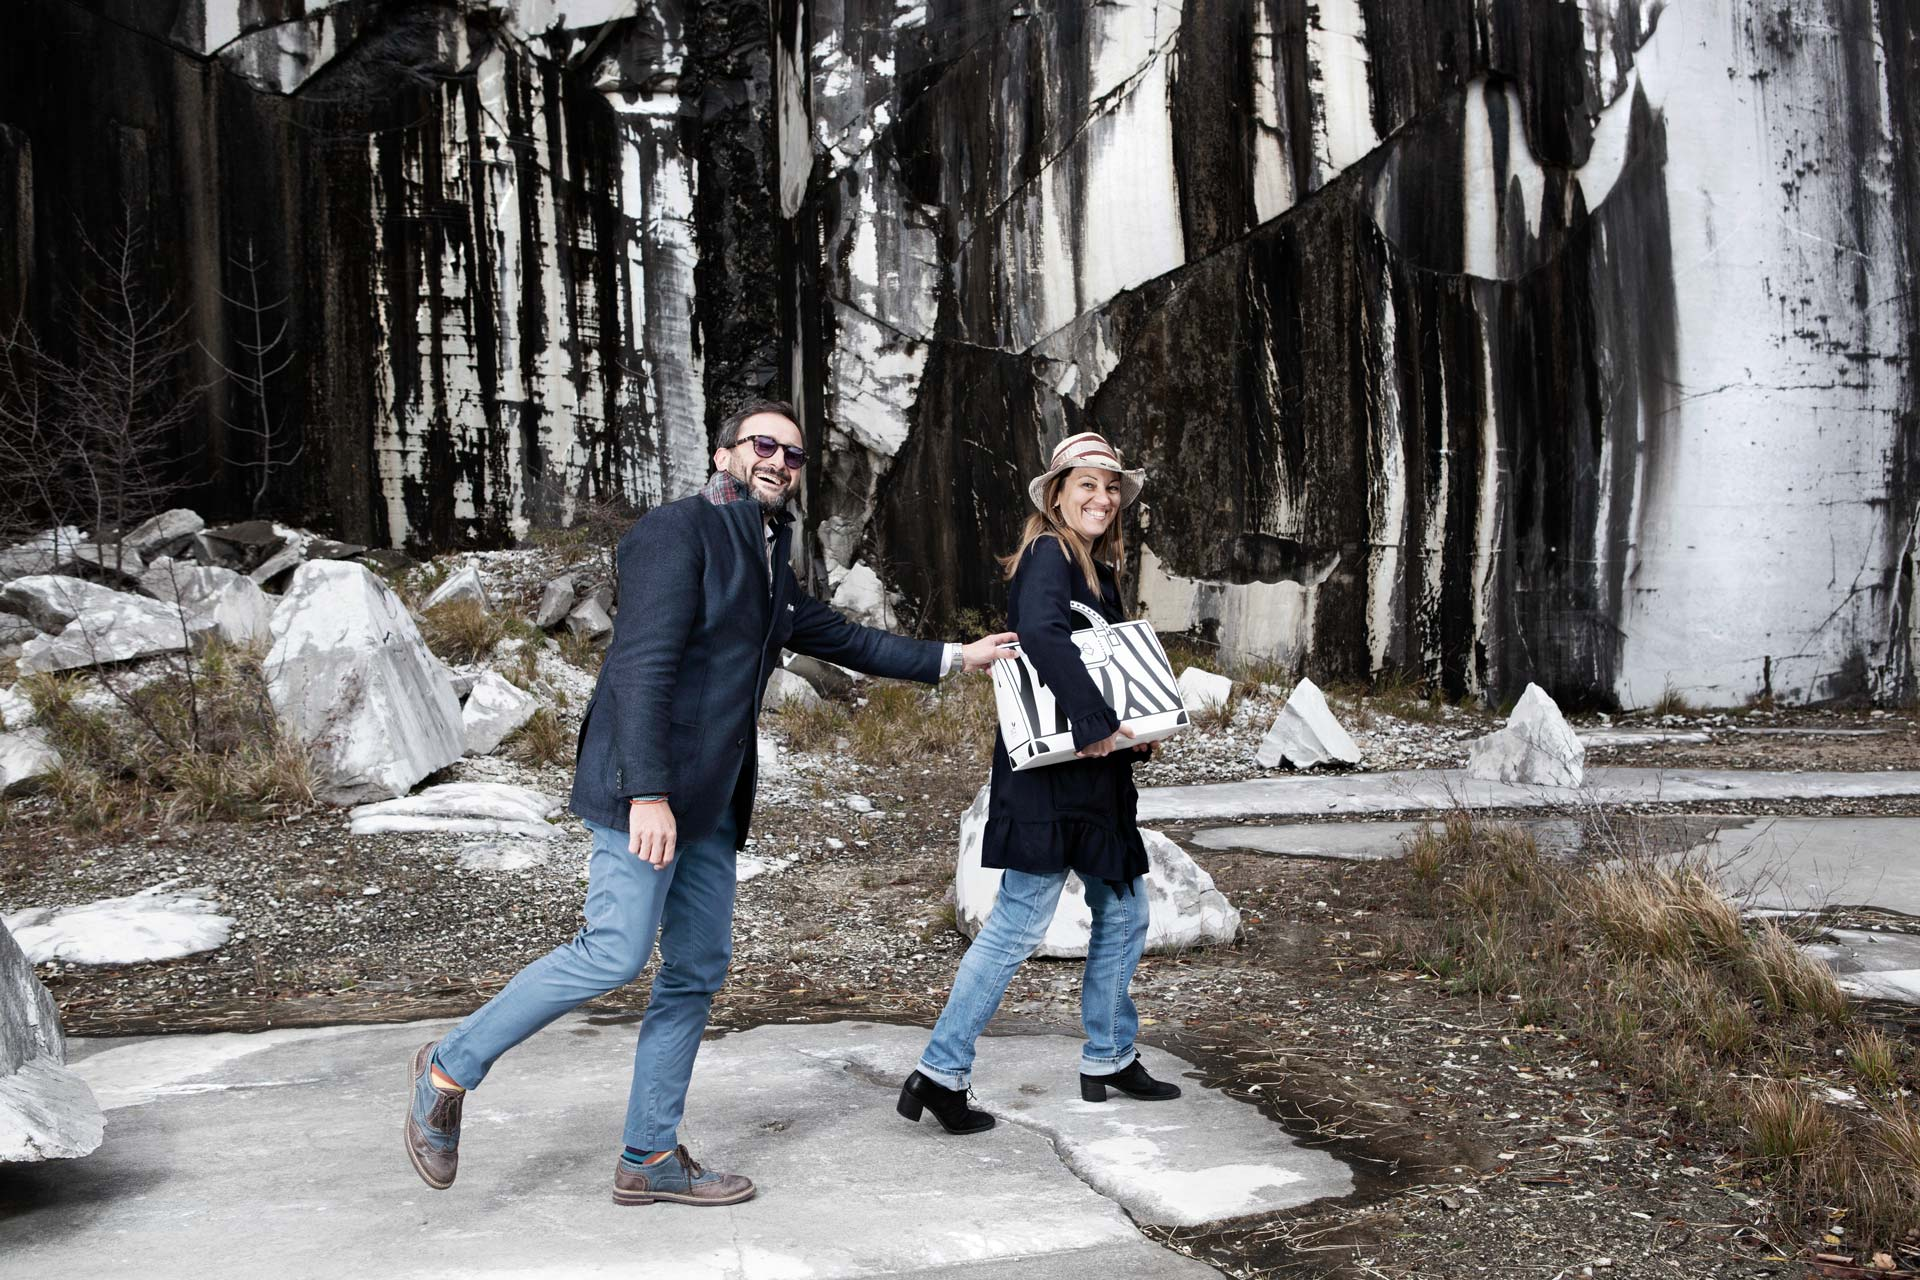 WO Italian Design nelle cave di Carrara, made in story, gianluca flammia